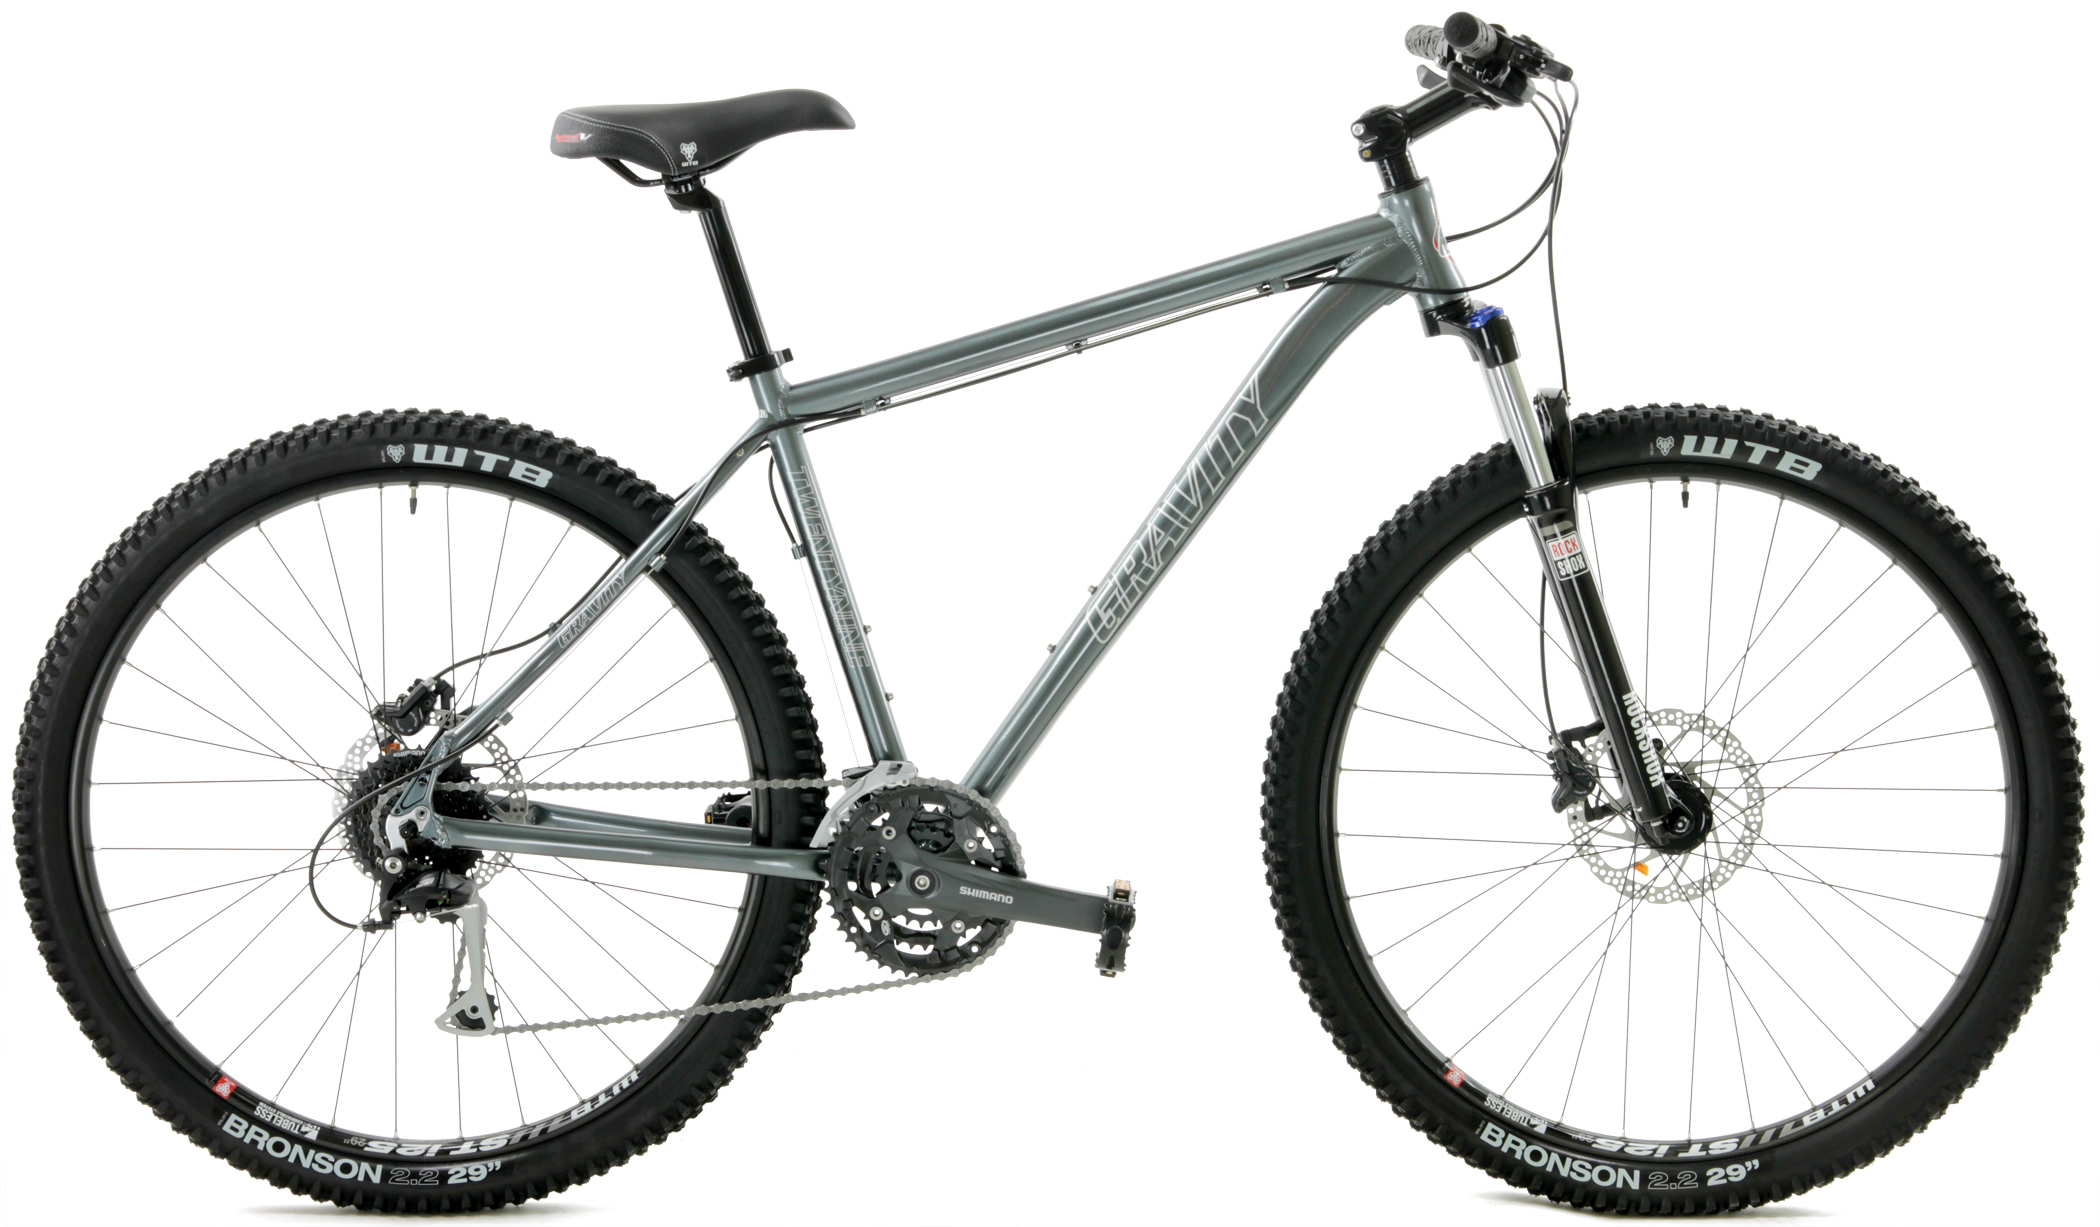 29.3  - ALUMINUM 27sp SHIMANO <br>w/ HYDRAULIC DISC BRAKES